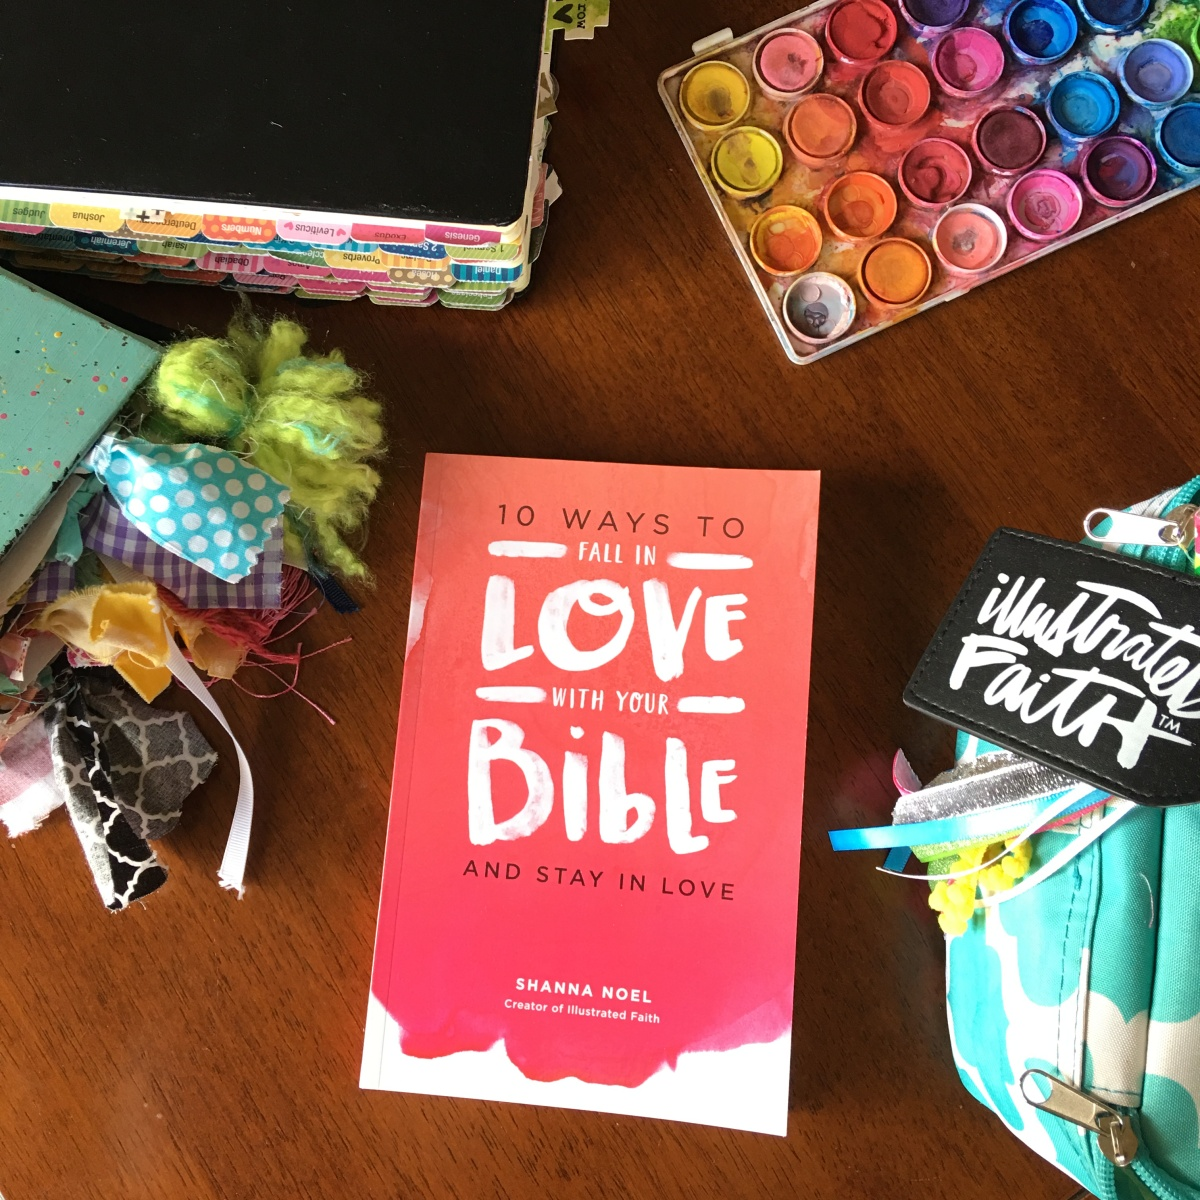 10 Ways to Fall in Love with Your Bible and Stay in Love!